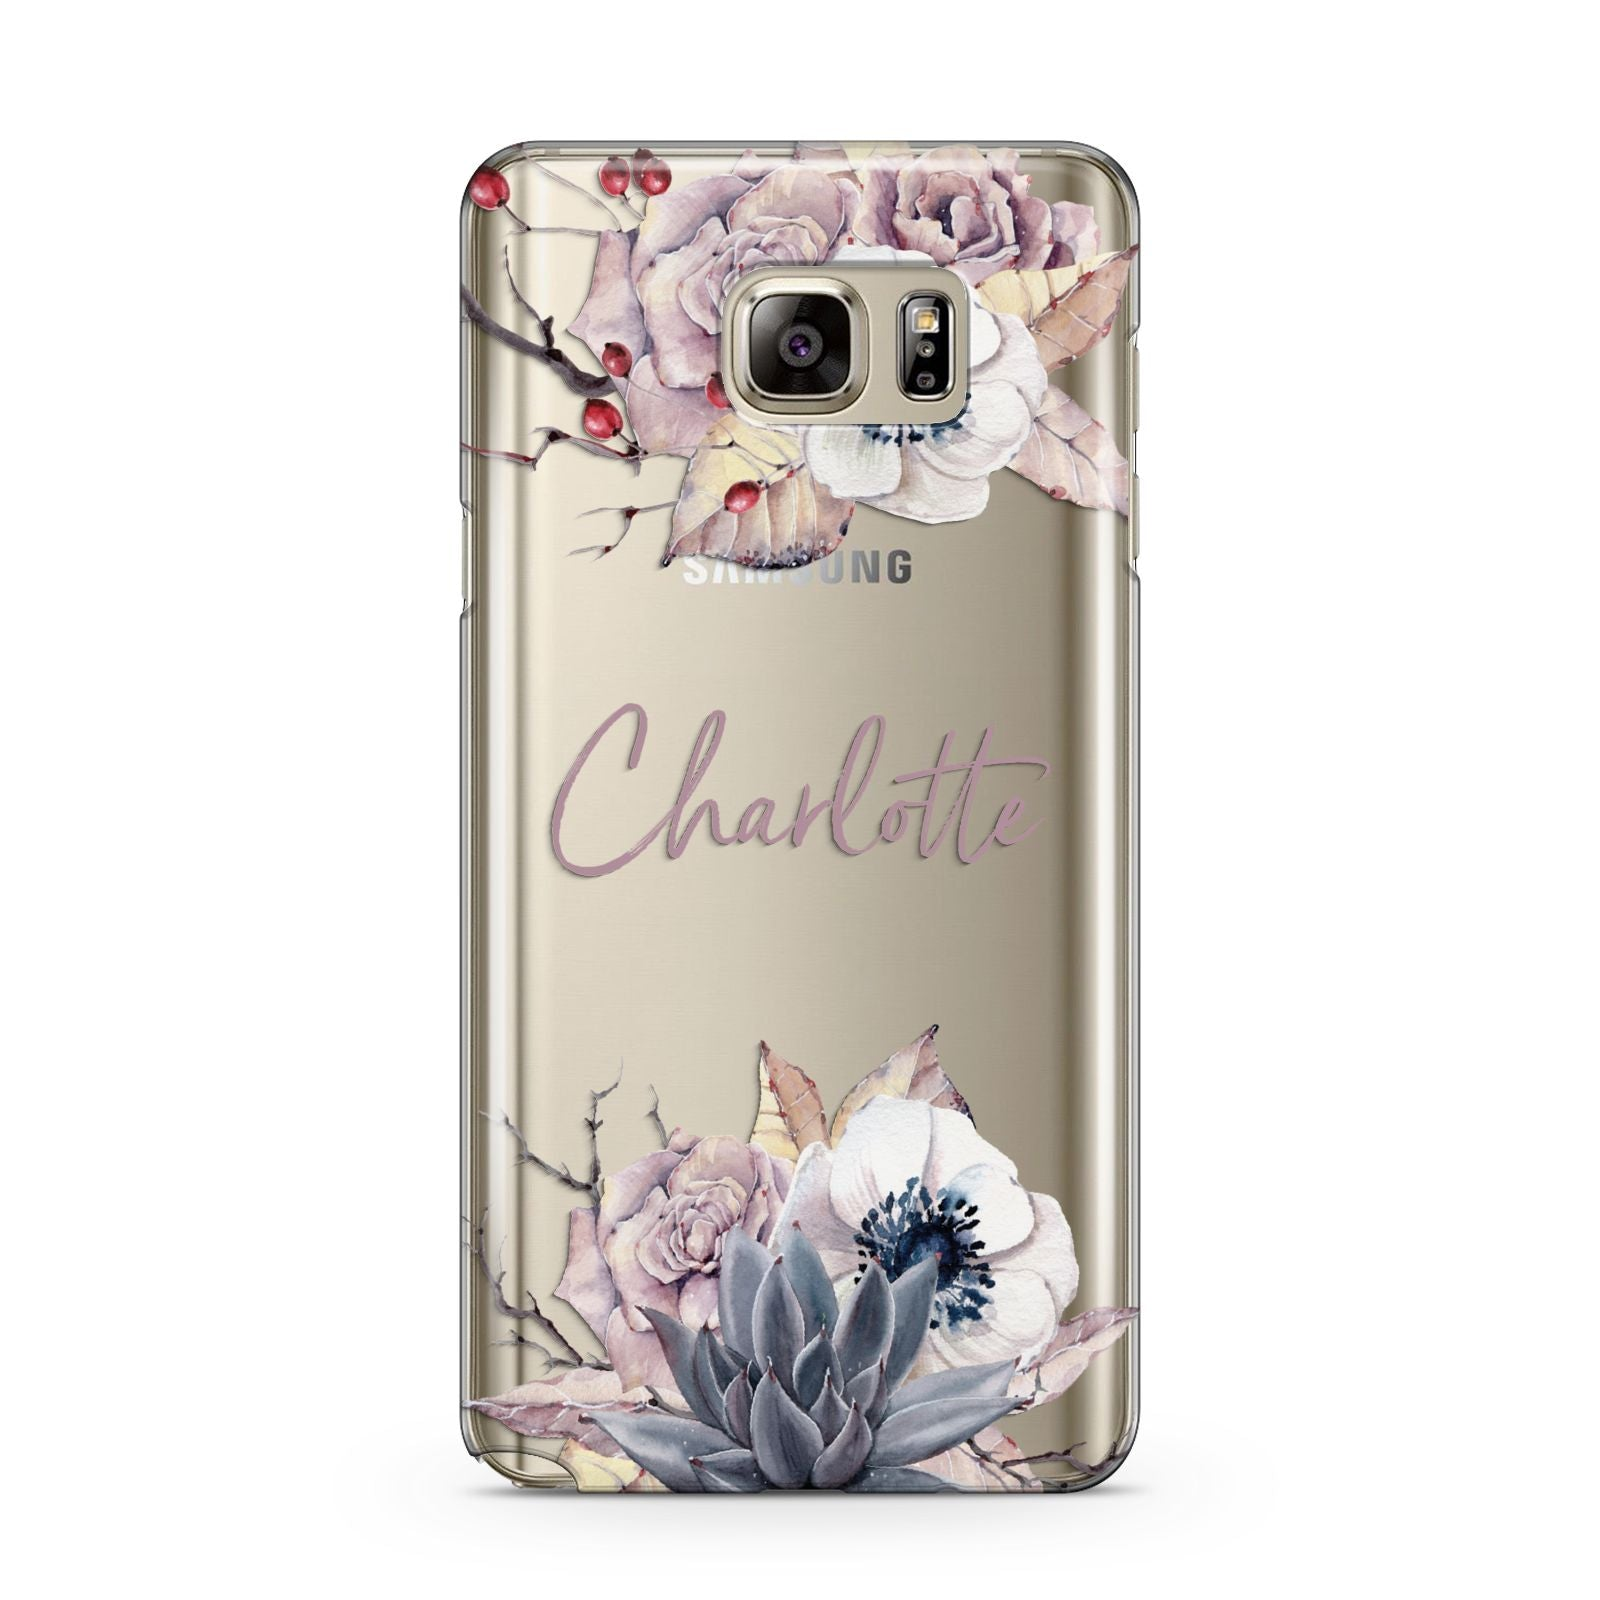 Personalised Autumn Floral Samsung Galaxy Note 5 Case